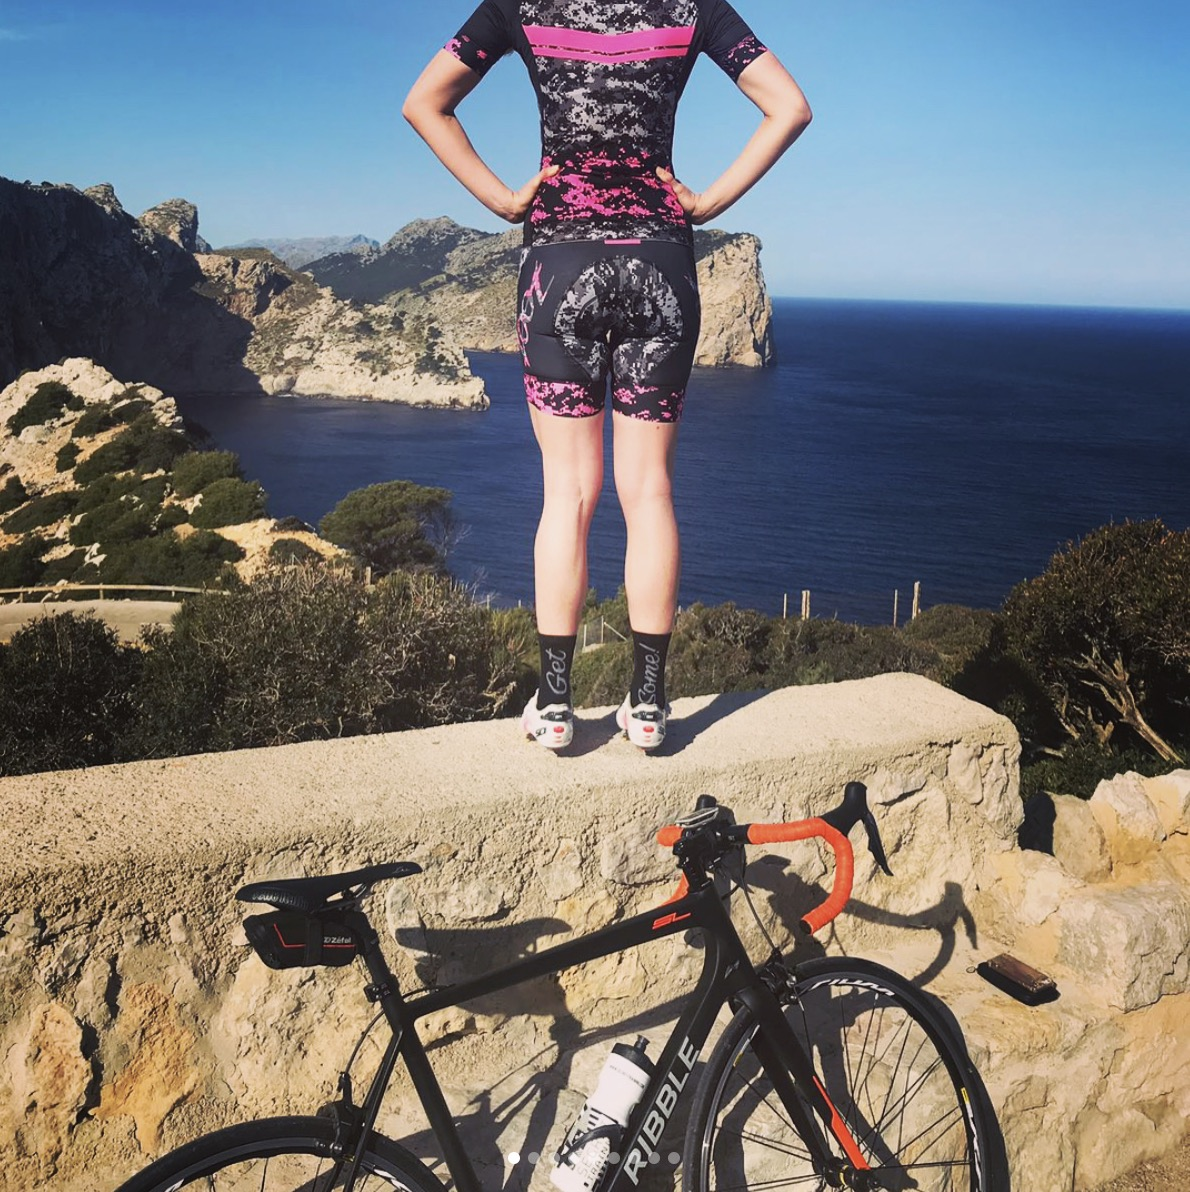 Anna Weaver (Manchester, UK)  Anna loves cycling and triathlons. She can be found in the UK (and some other exotic locations around the world) showing her strength and endurance skills.